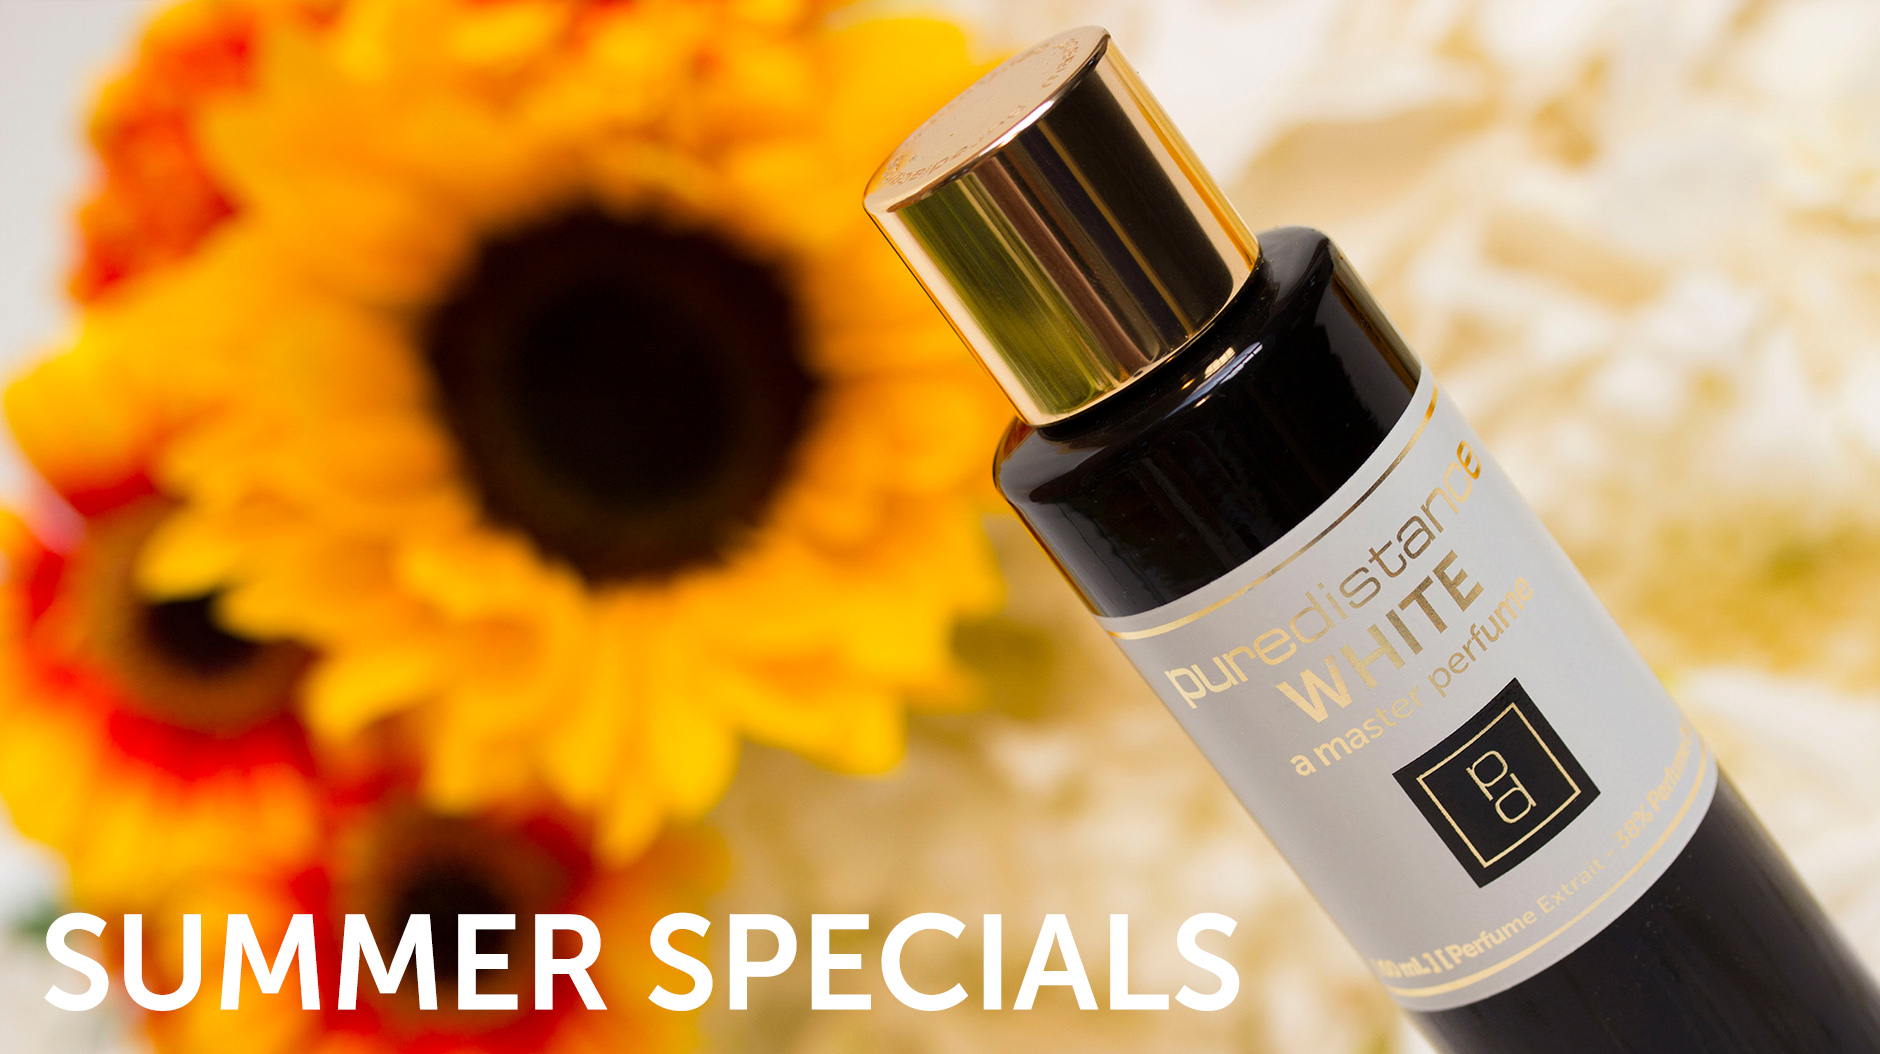 puredistance white perfume summer specials